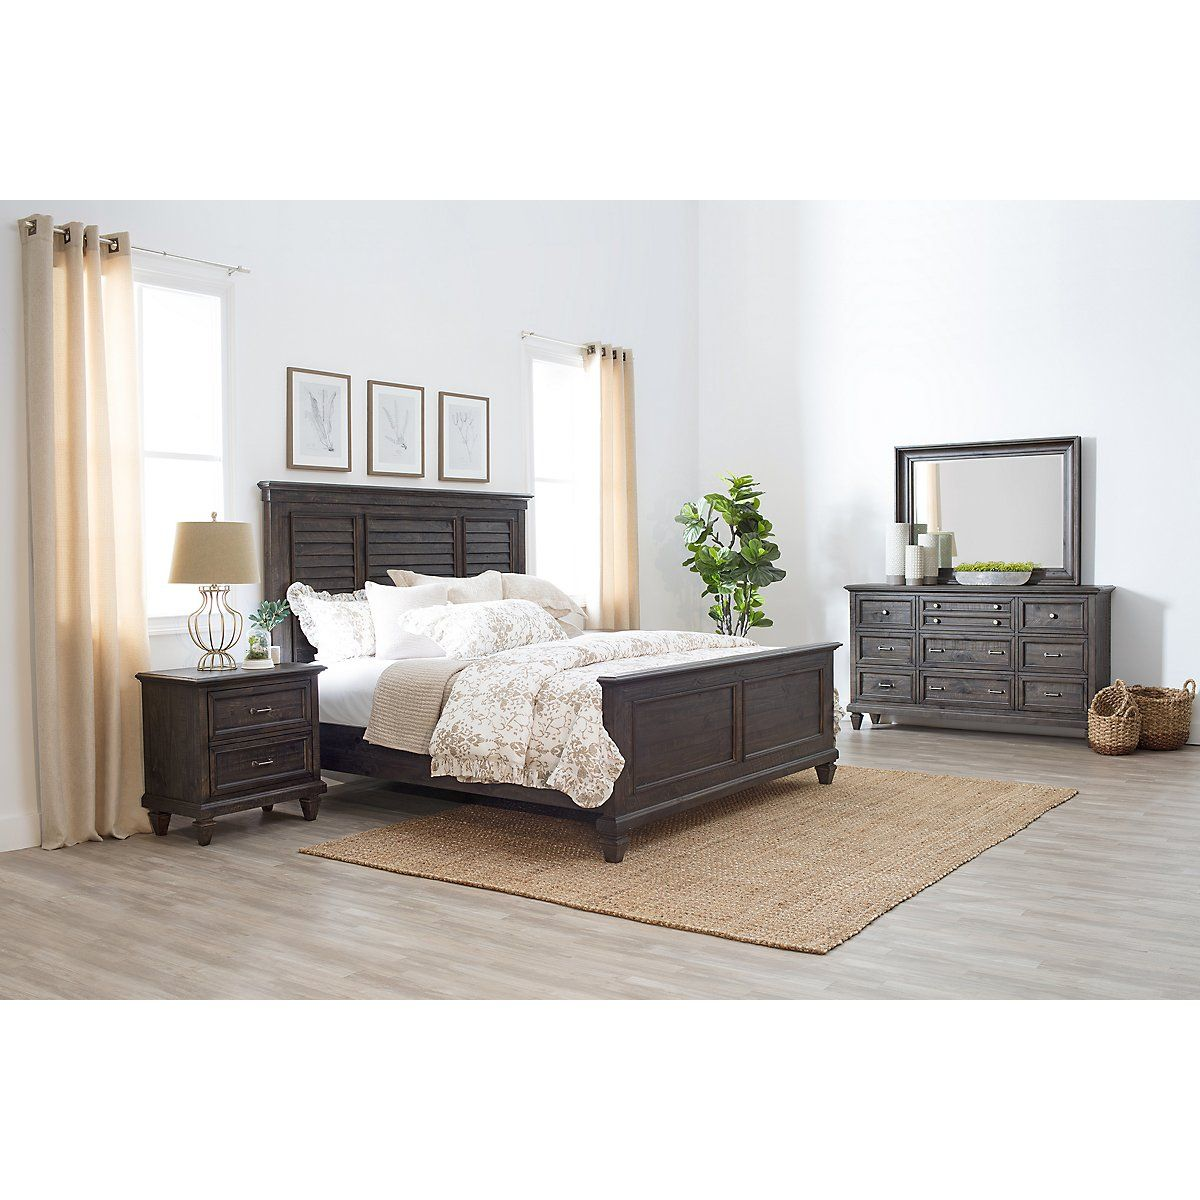 City Furniture Sonoma Gray Panel Bedroom Panel bed, Bed